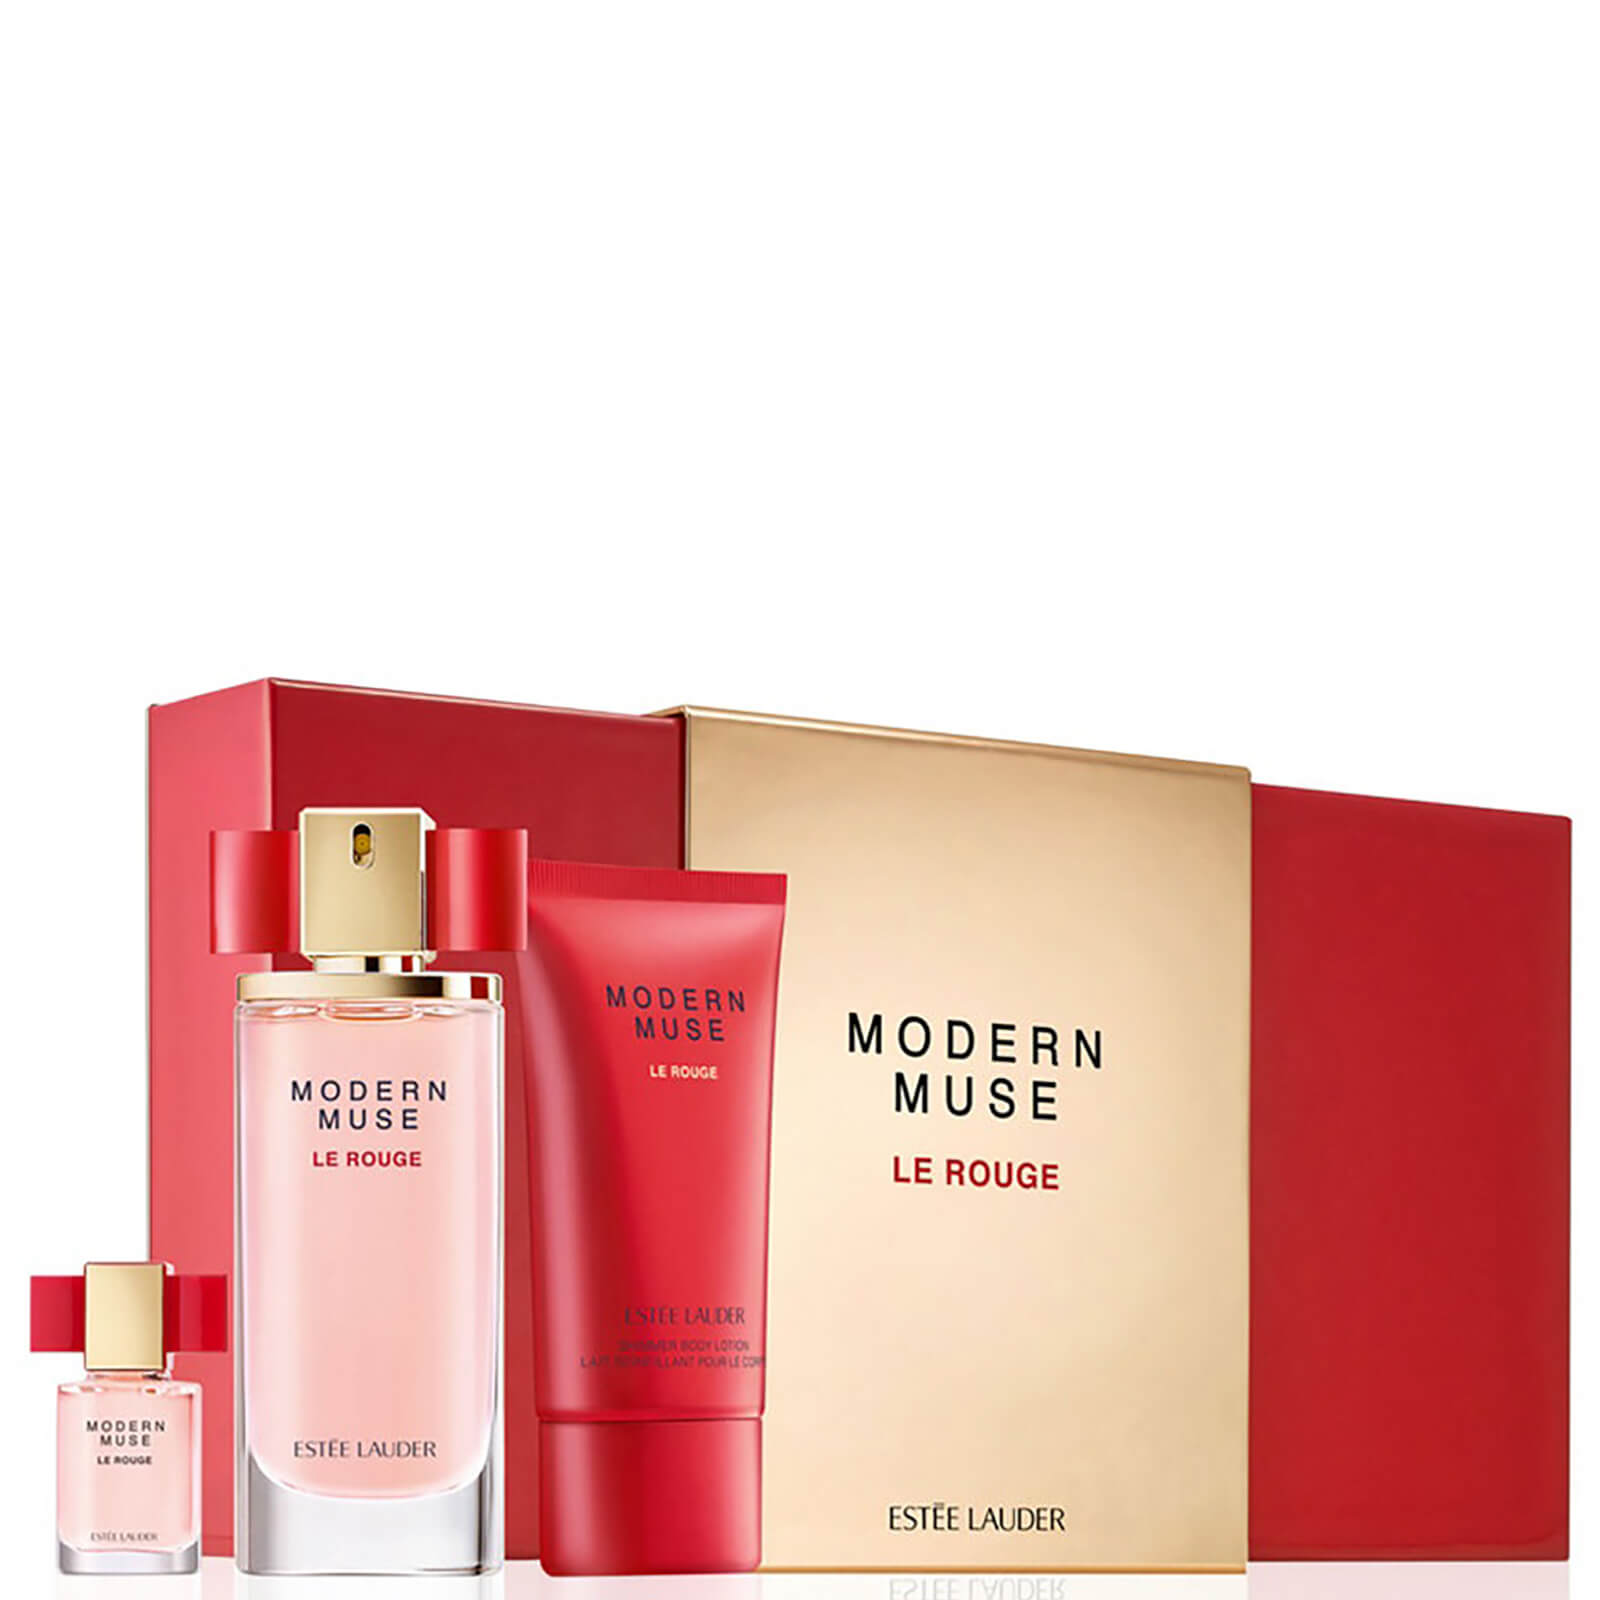 7f624eb0ef0e Estée Lauder Modern Muse Le Rouge 3 Piece Gift Set. Description